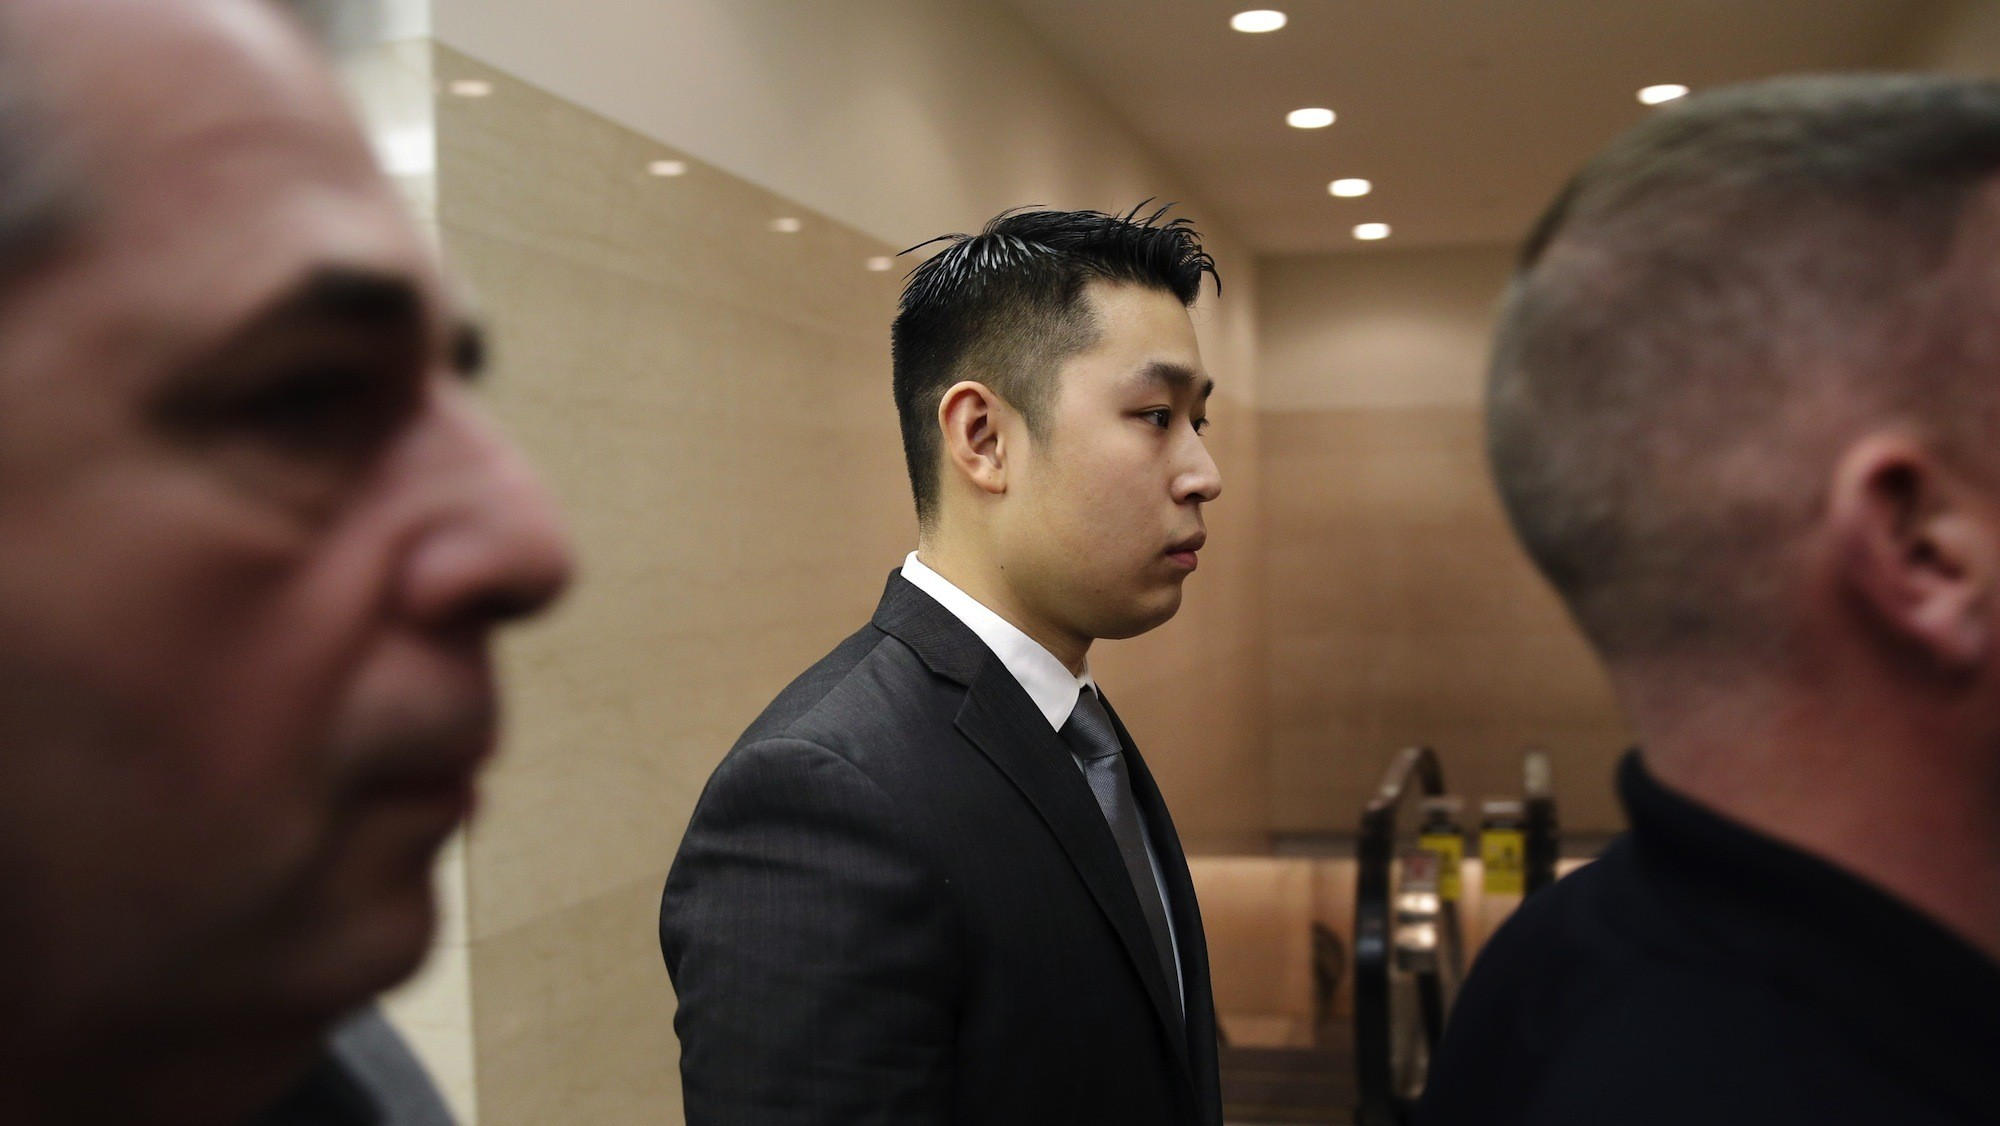 Jury Hears Closing Arguments in Trial of NYPD Officer Involved in Fatal Stairway Shooting